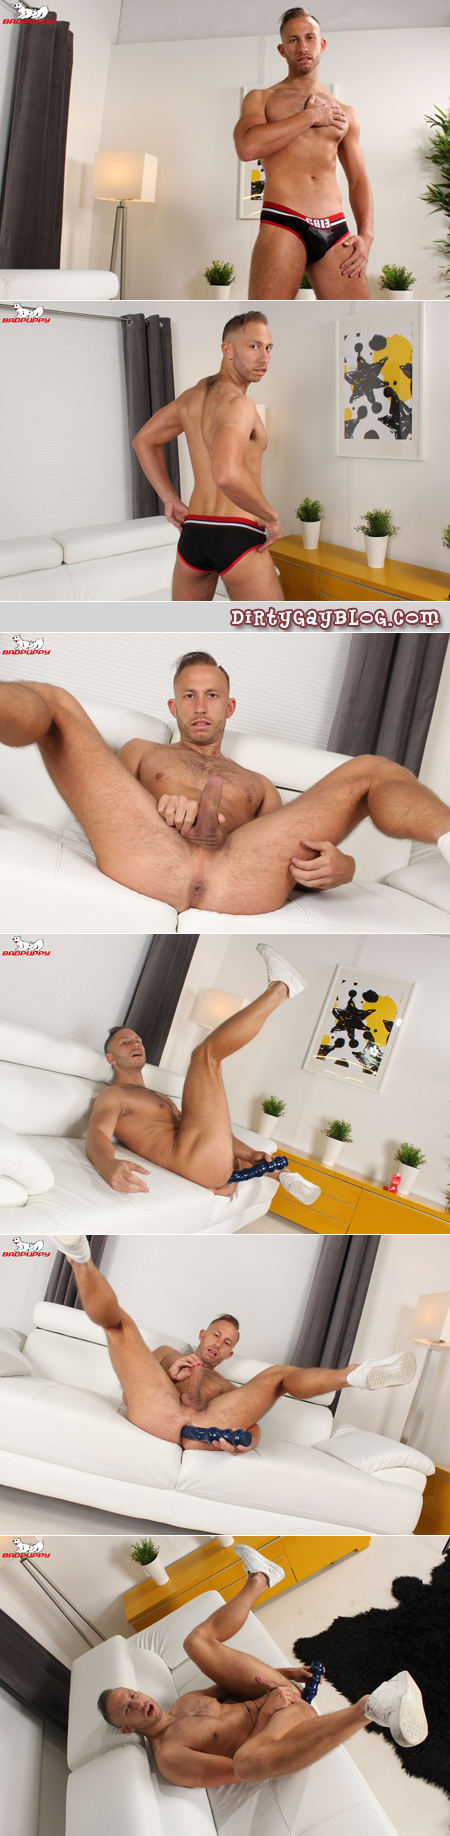 Hairy British lad fucking himself with an enormous dildo.